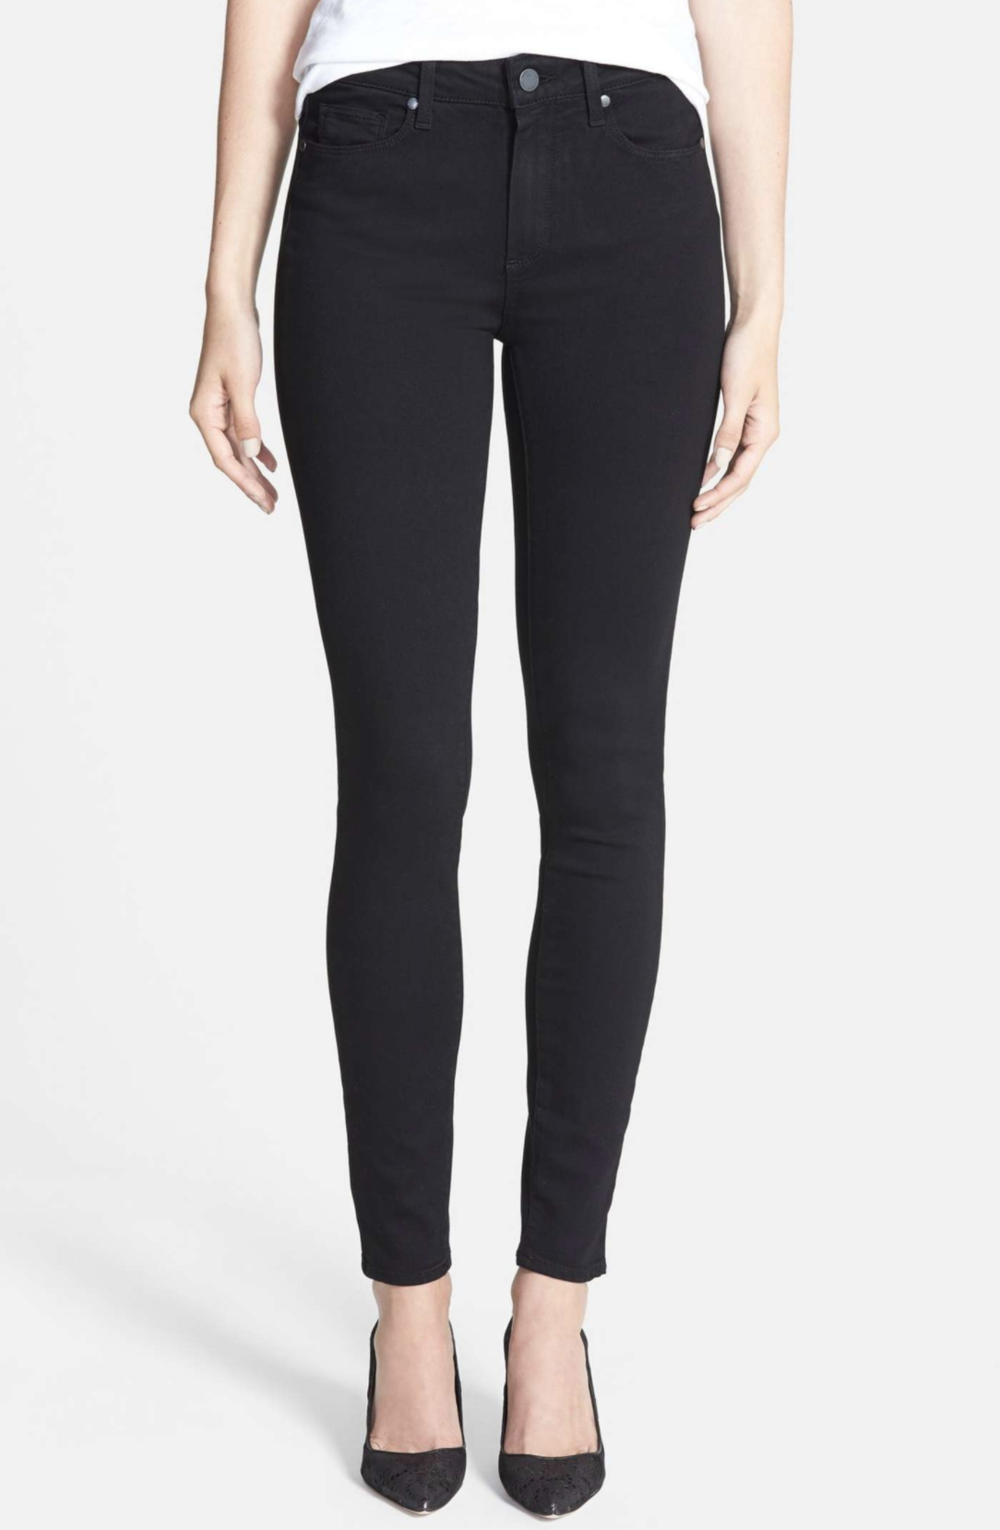 High RiseSkinnies - Paige is one of my favorite denim brands because they are so comfortable and they make the booty look good! These black skinnies are a staple that you can wear throughout the year.